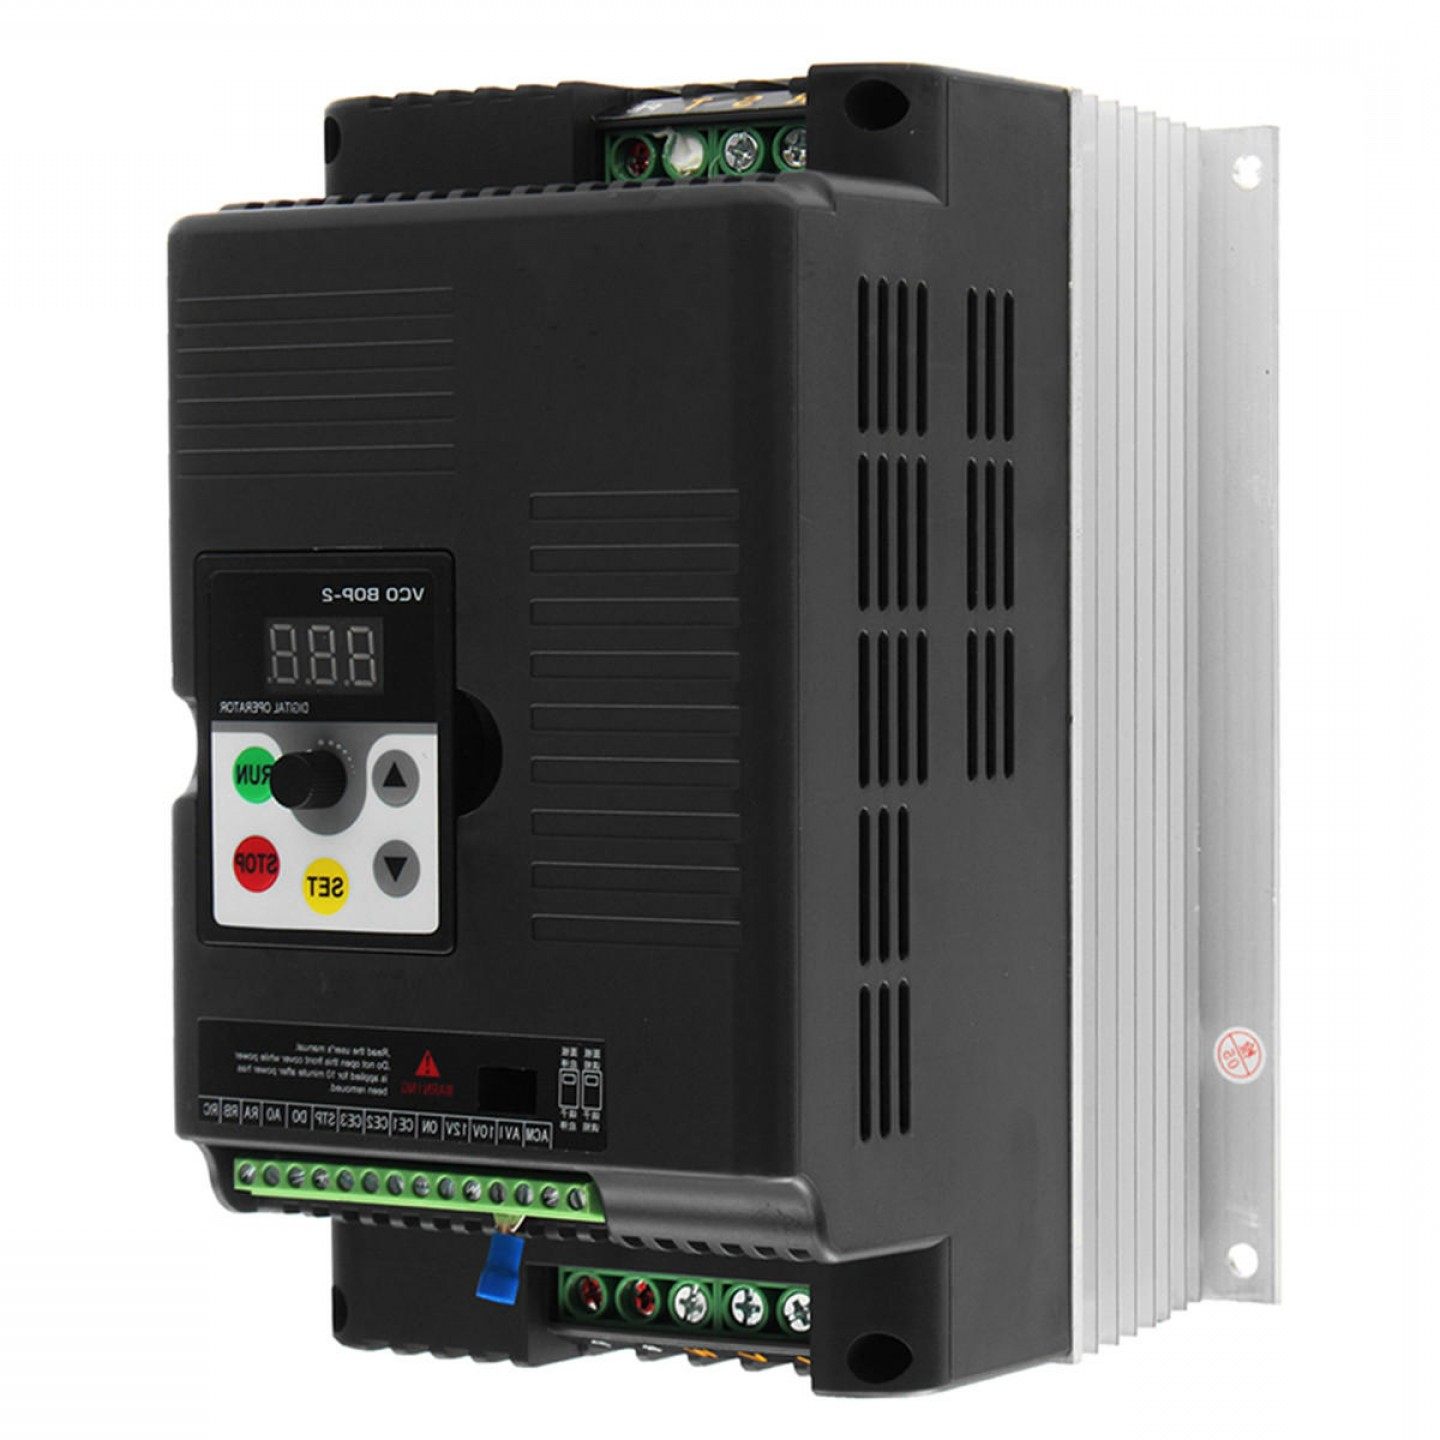 Vector 12V Inverter: Kw V Phase Output Variable Frequency Inverter Vector Motor Speed Drive P